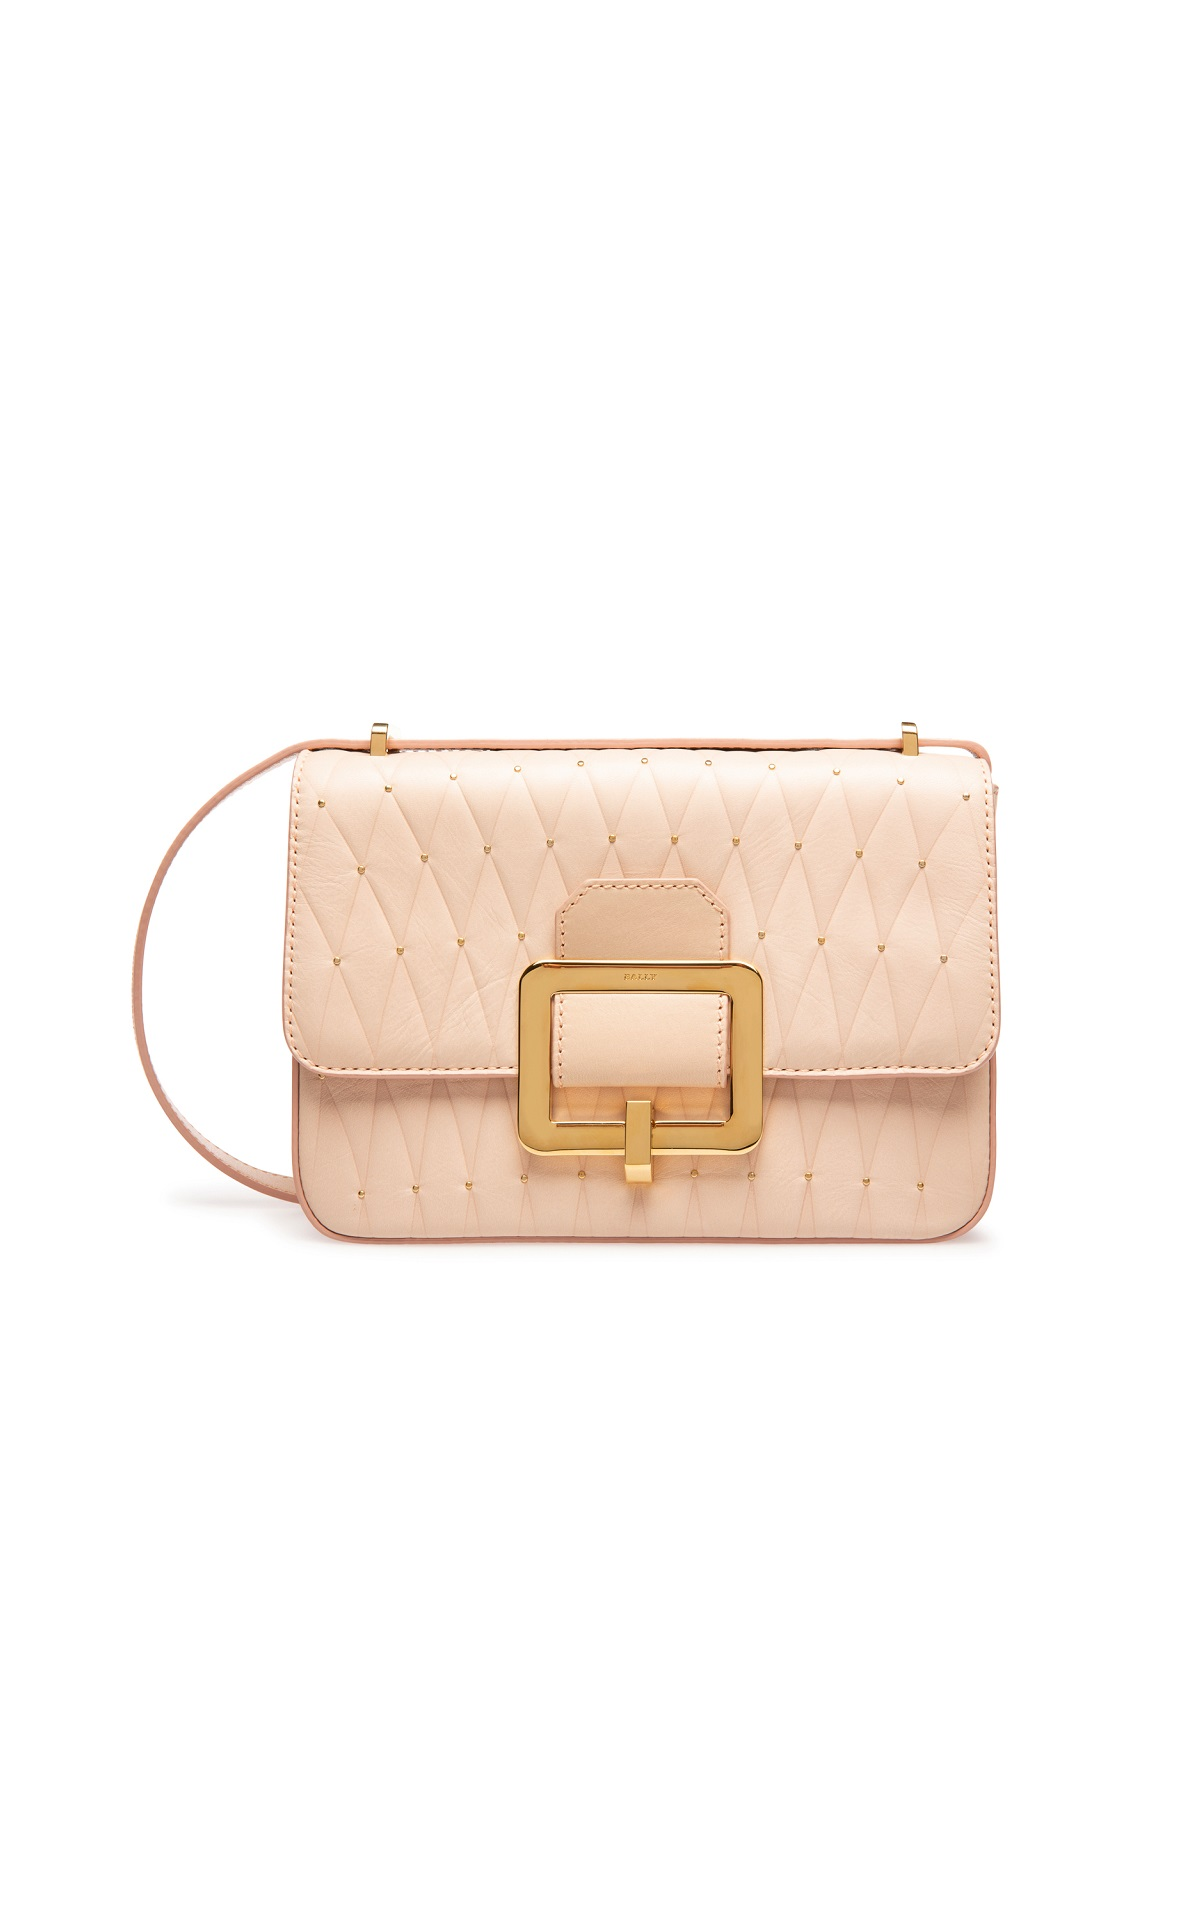 Nude leather bag Bally